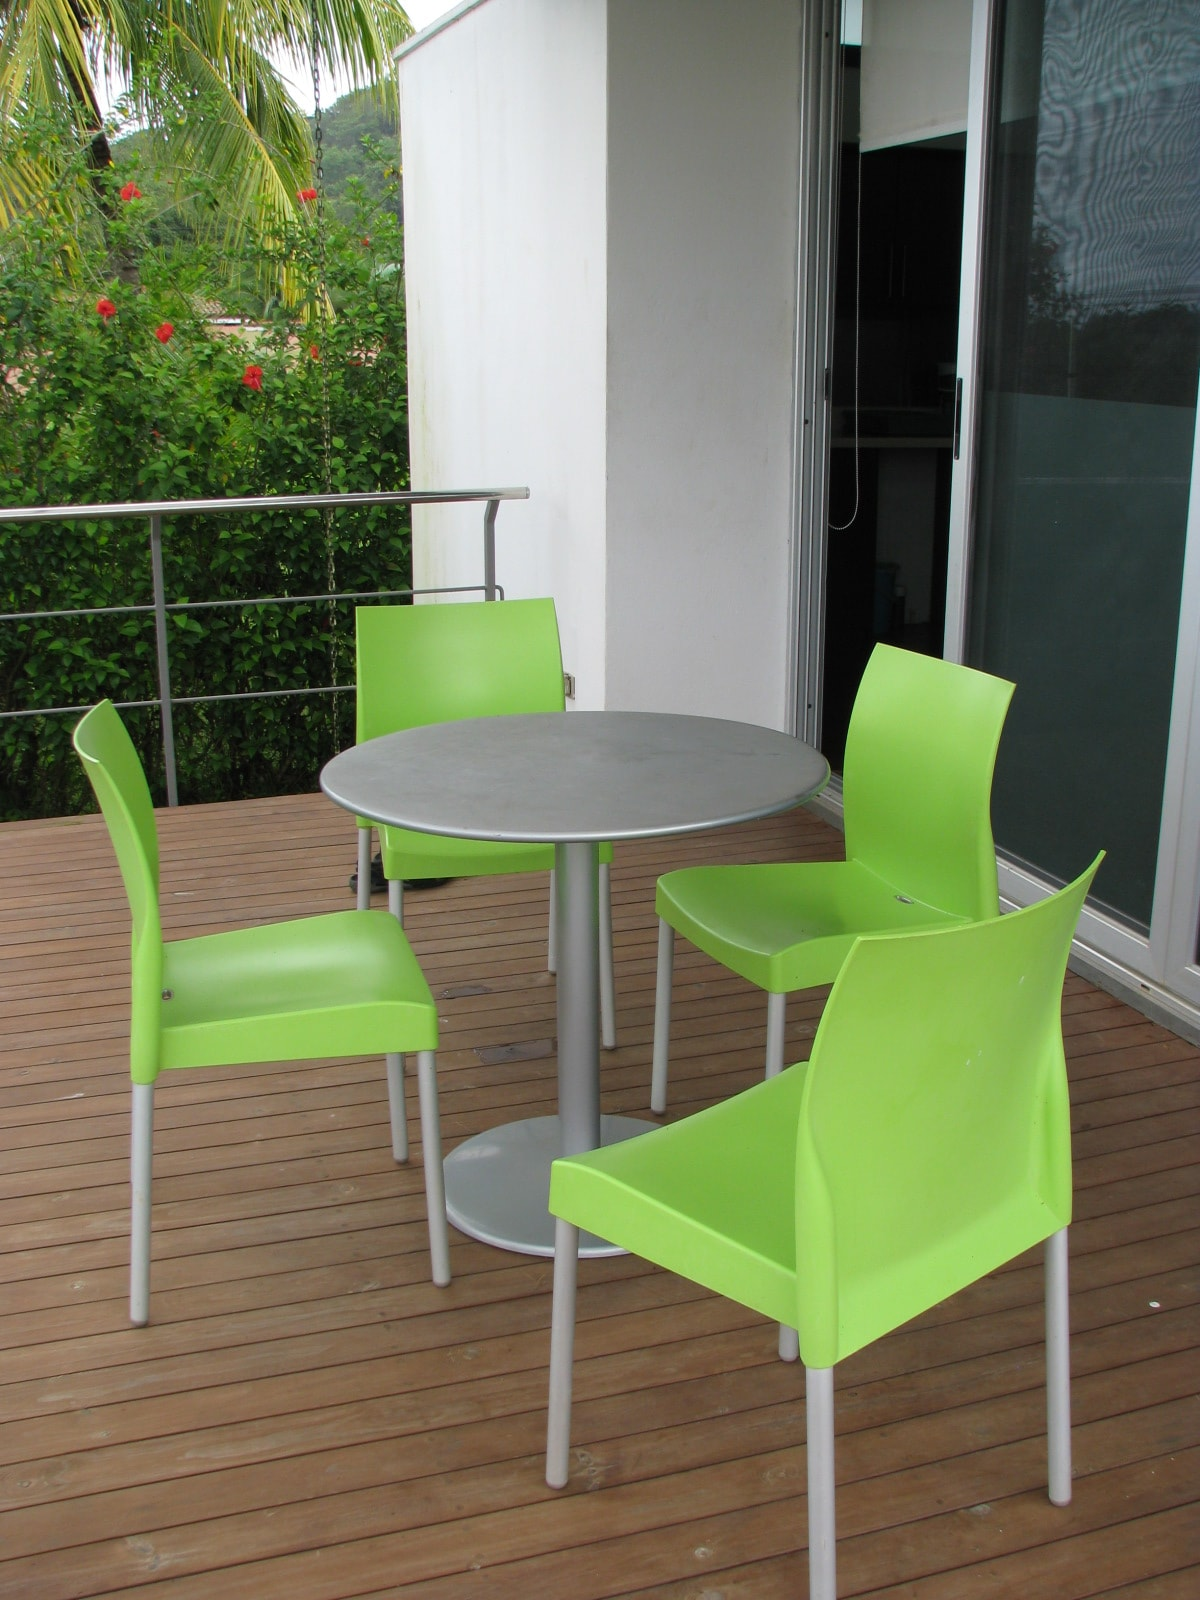 Deck w/ table & Chairs